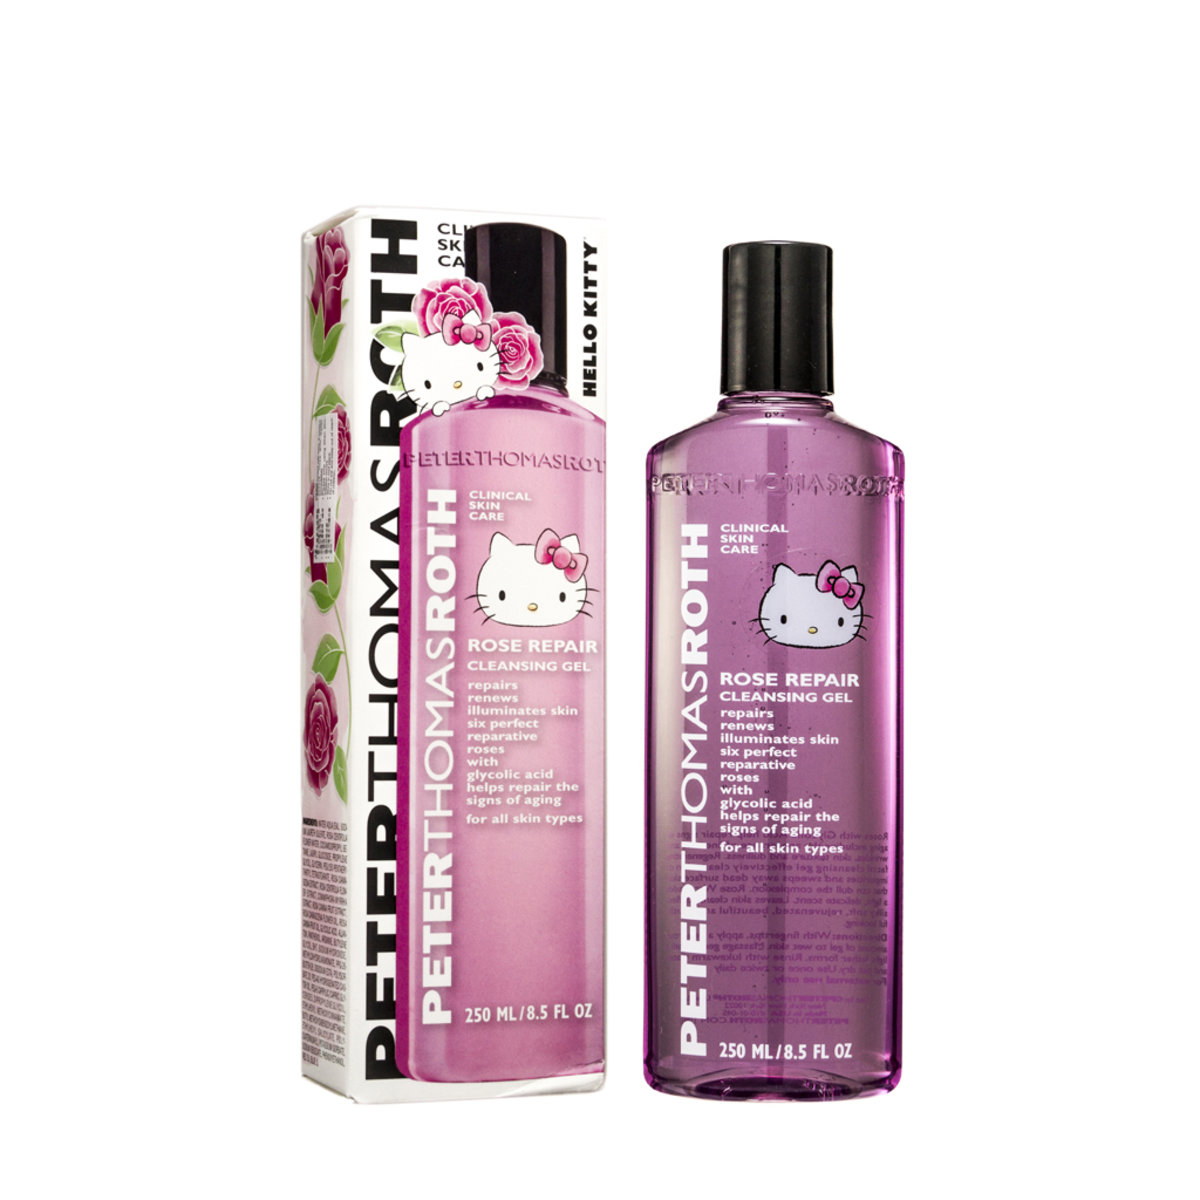 Rose Repair Cleansing Gel (Hello Kitty Limited Edition) (250 ml)